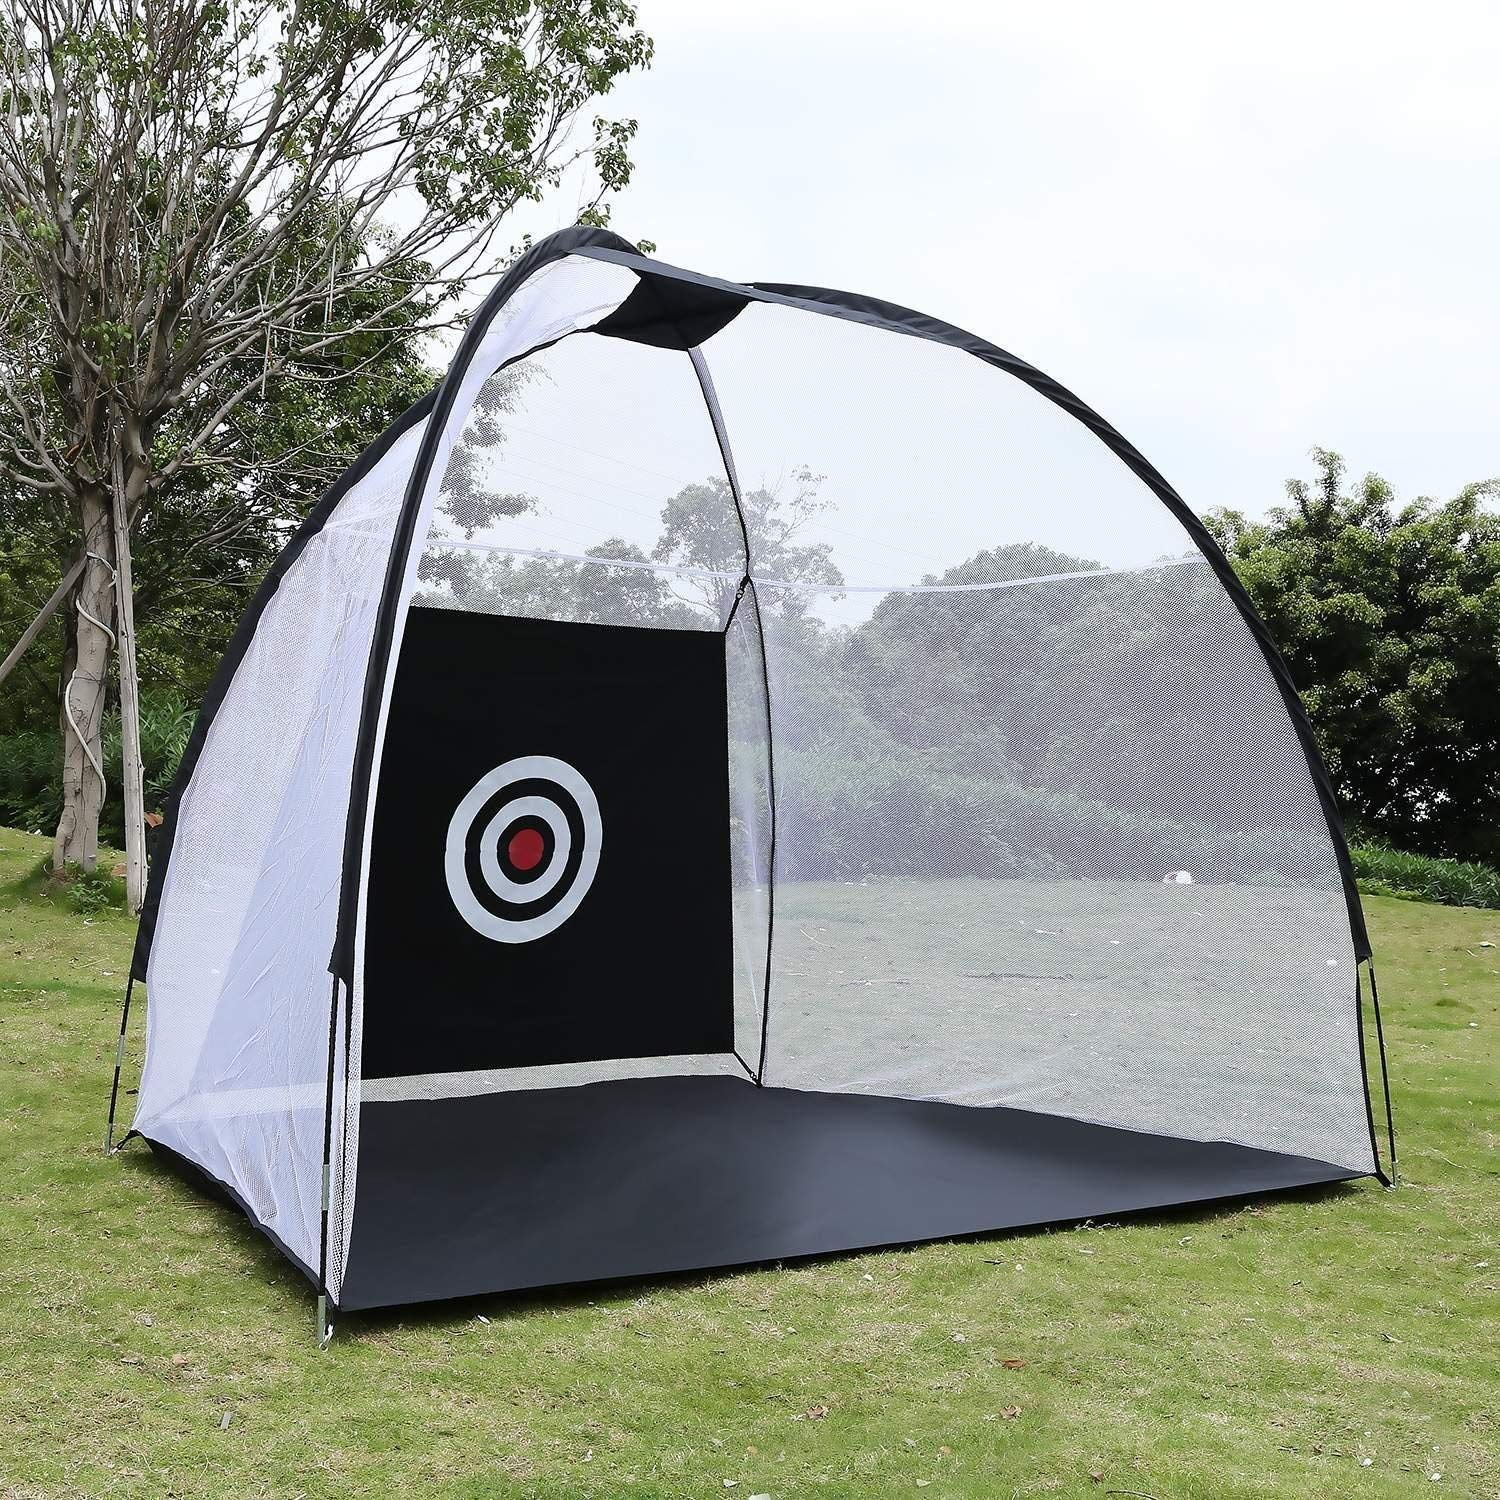 10x7 ft Giant Golf Practice Driving Net for Indoors and Outdoors - THE GOLFER'S PICK